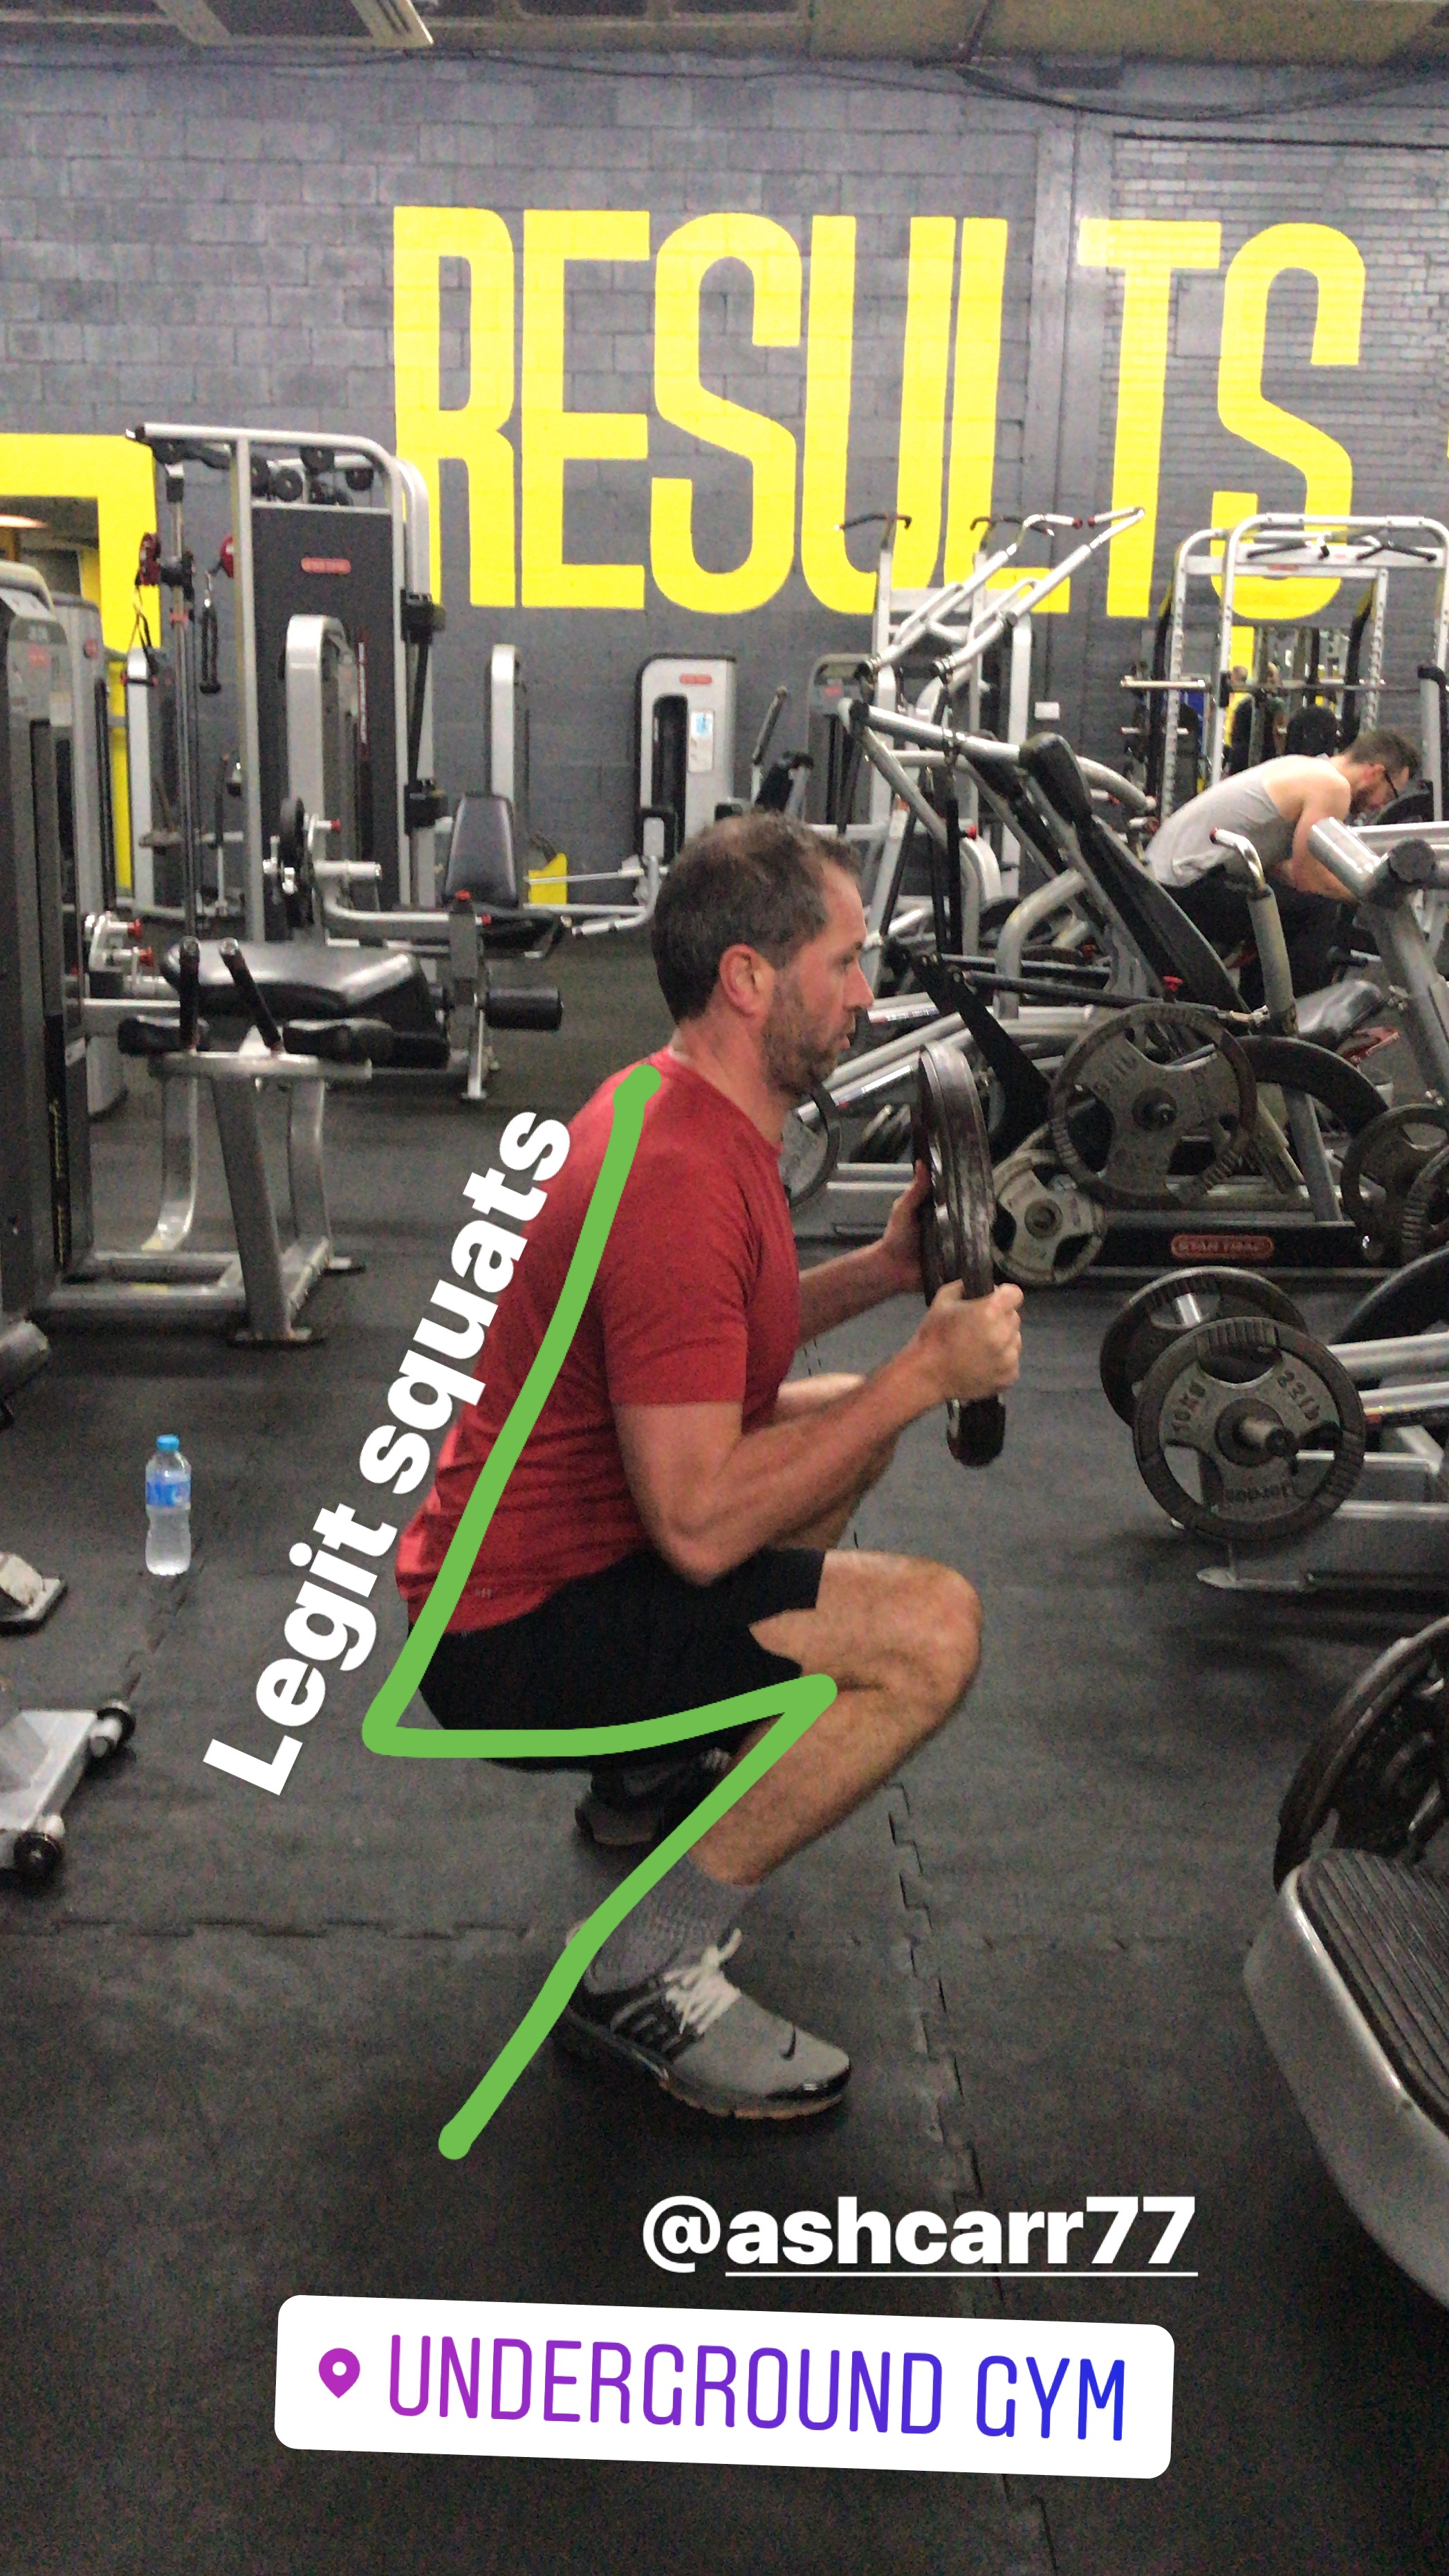 Stretching will enable you to squat lower